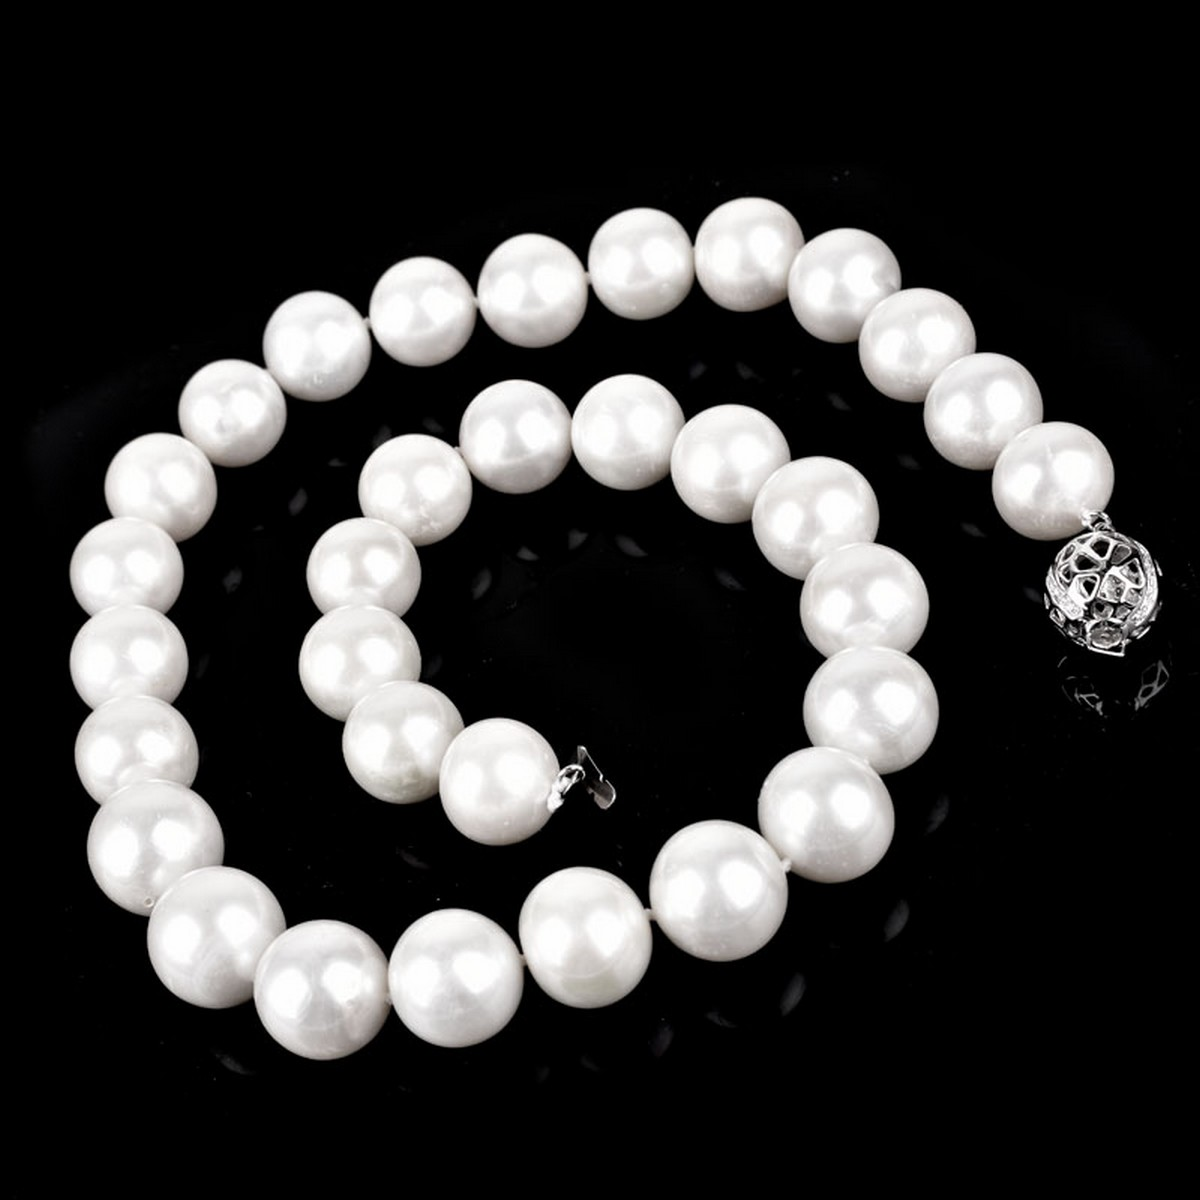 12-14mm South Sea Pearl Necklace